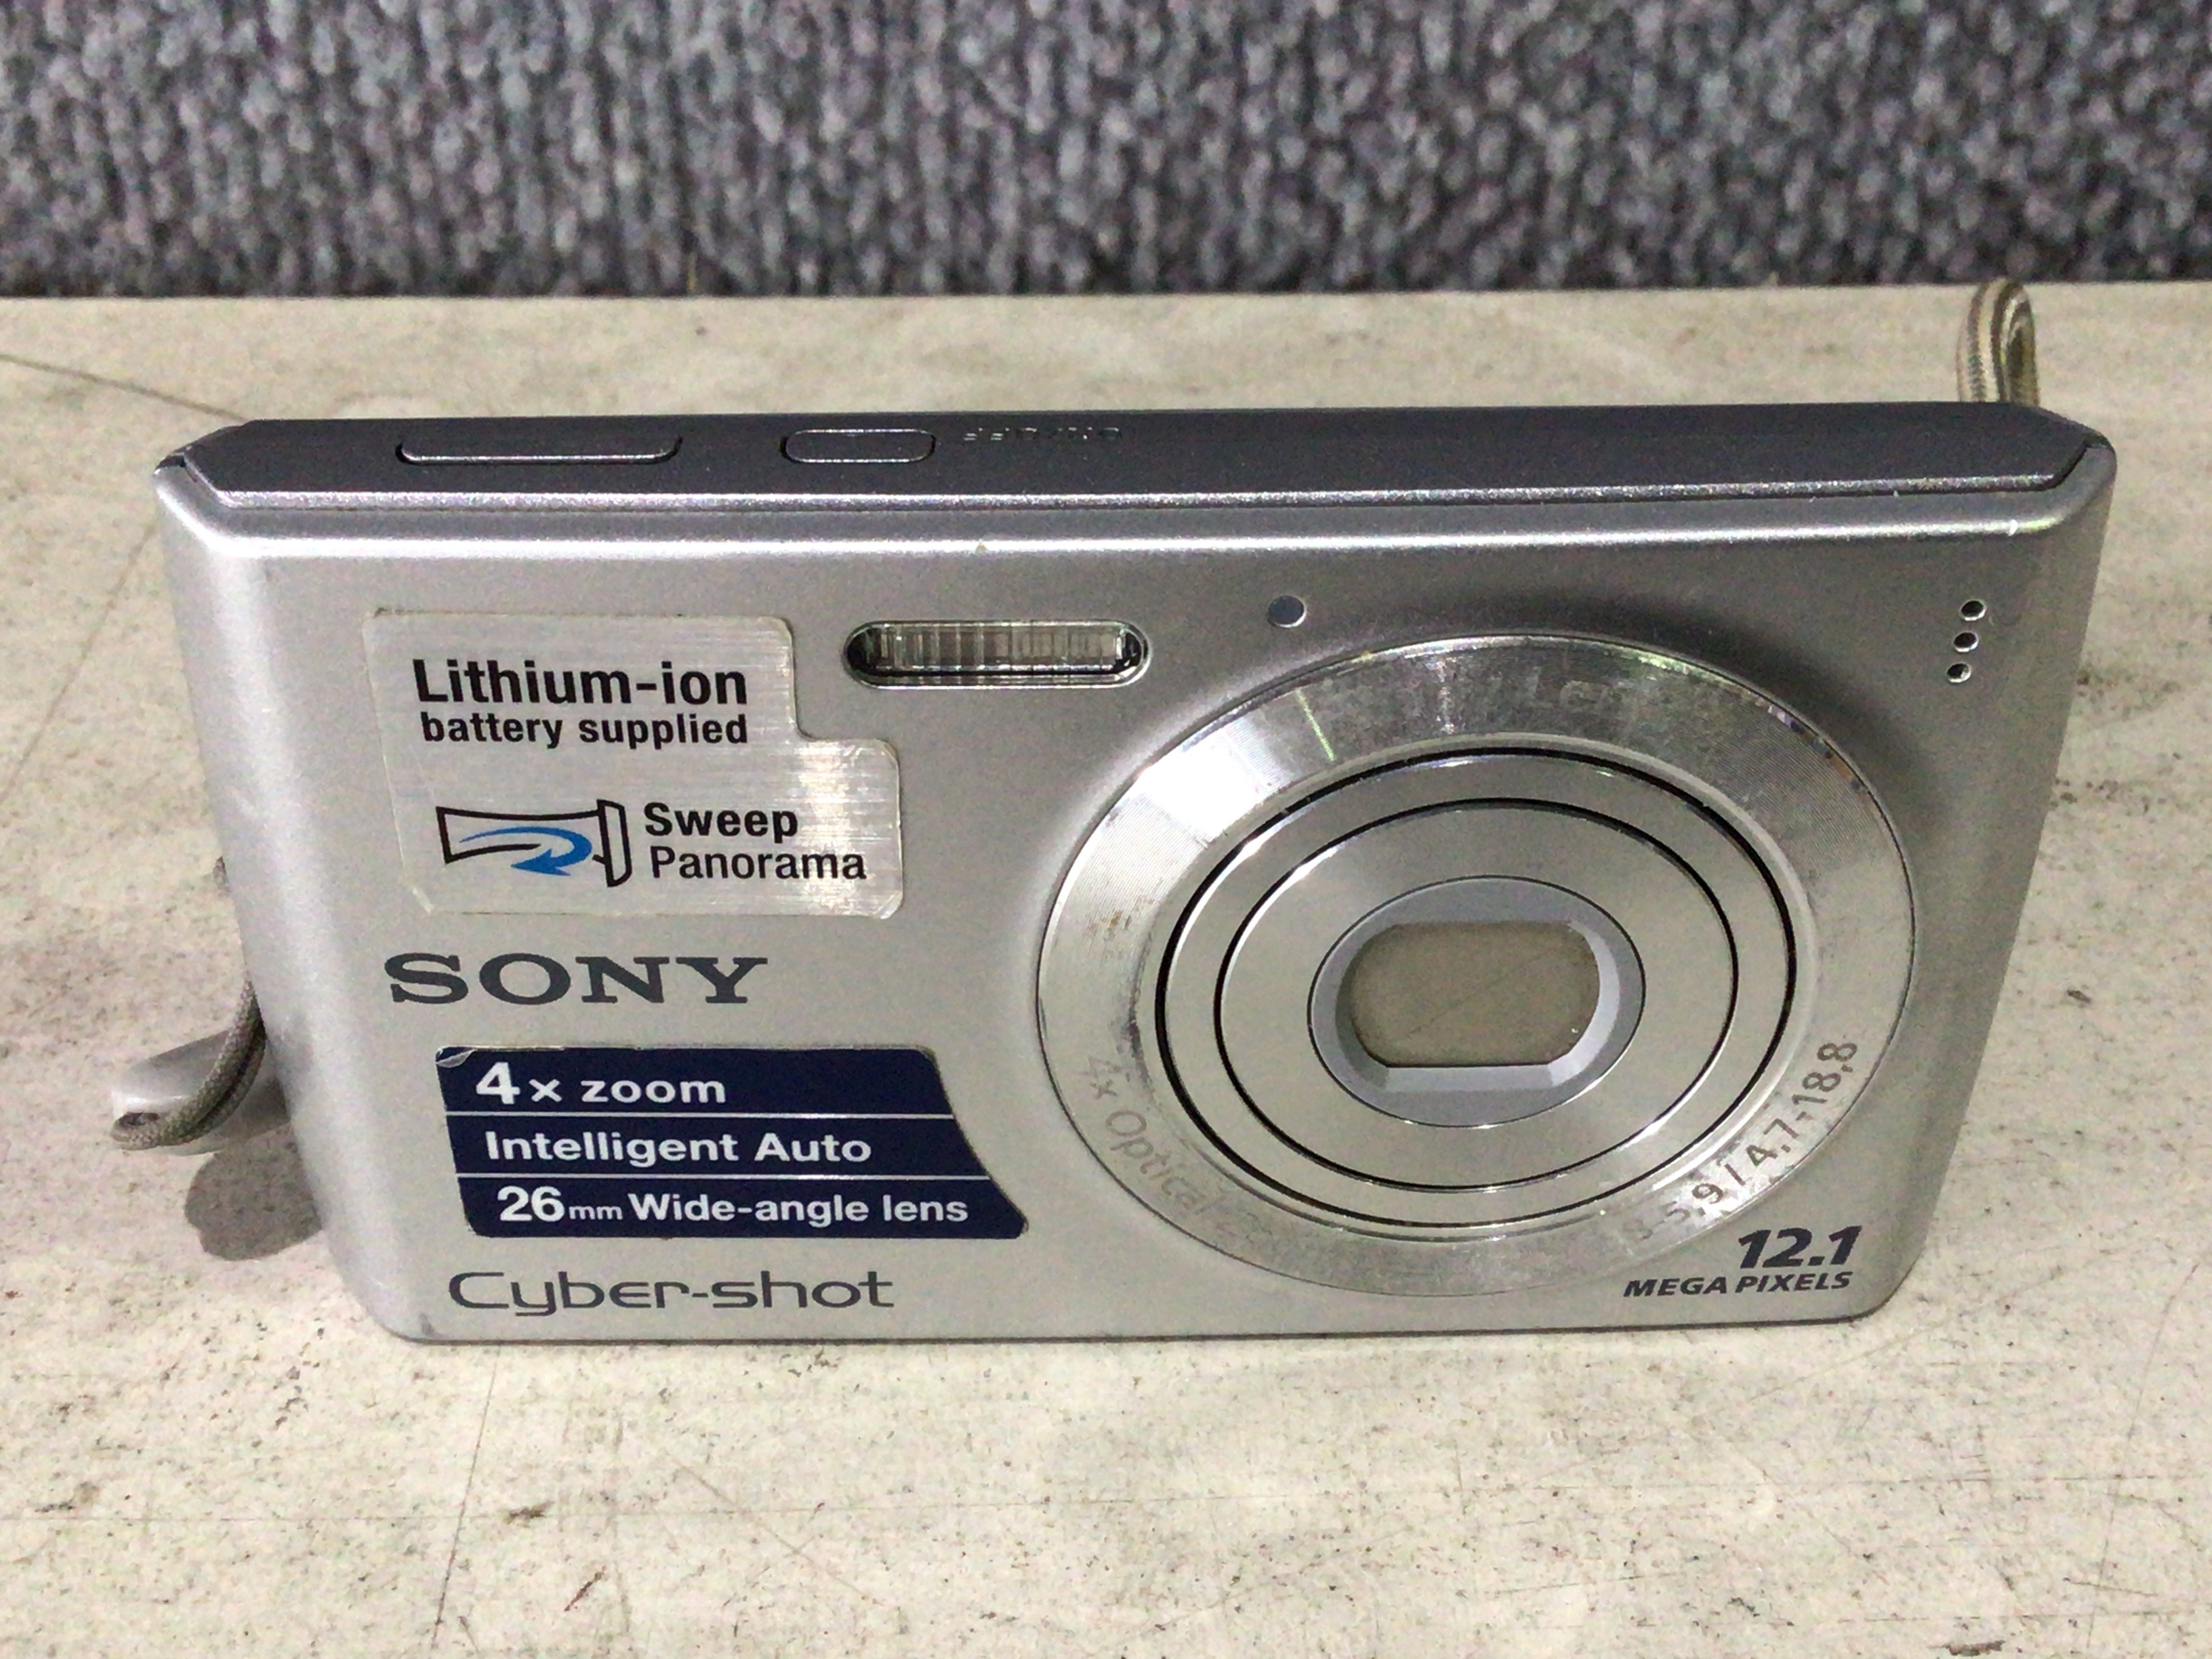 Sony DSC-W510 Digital Camera